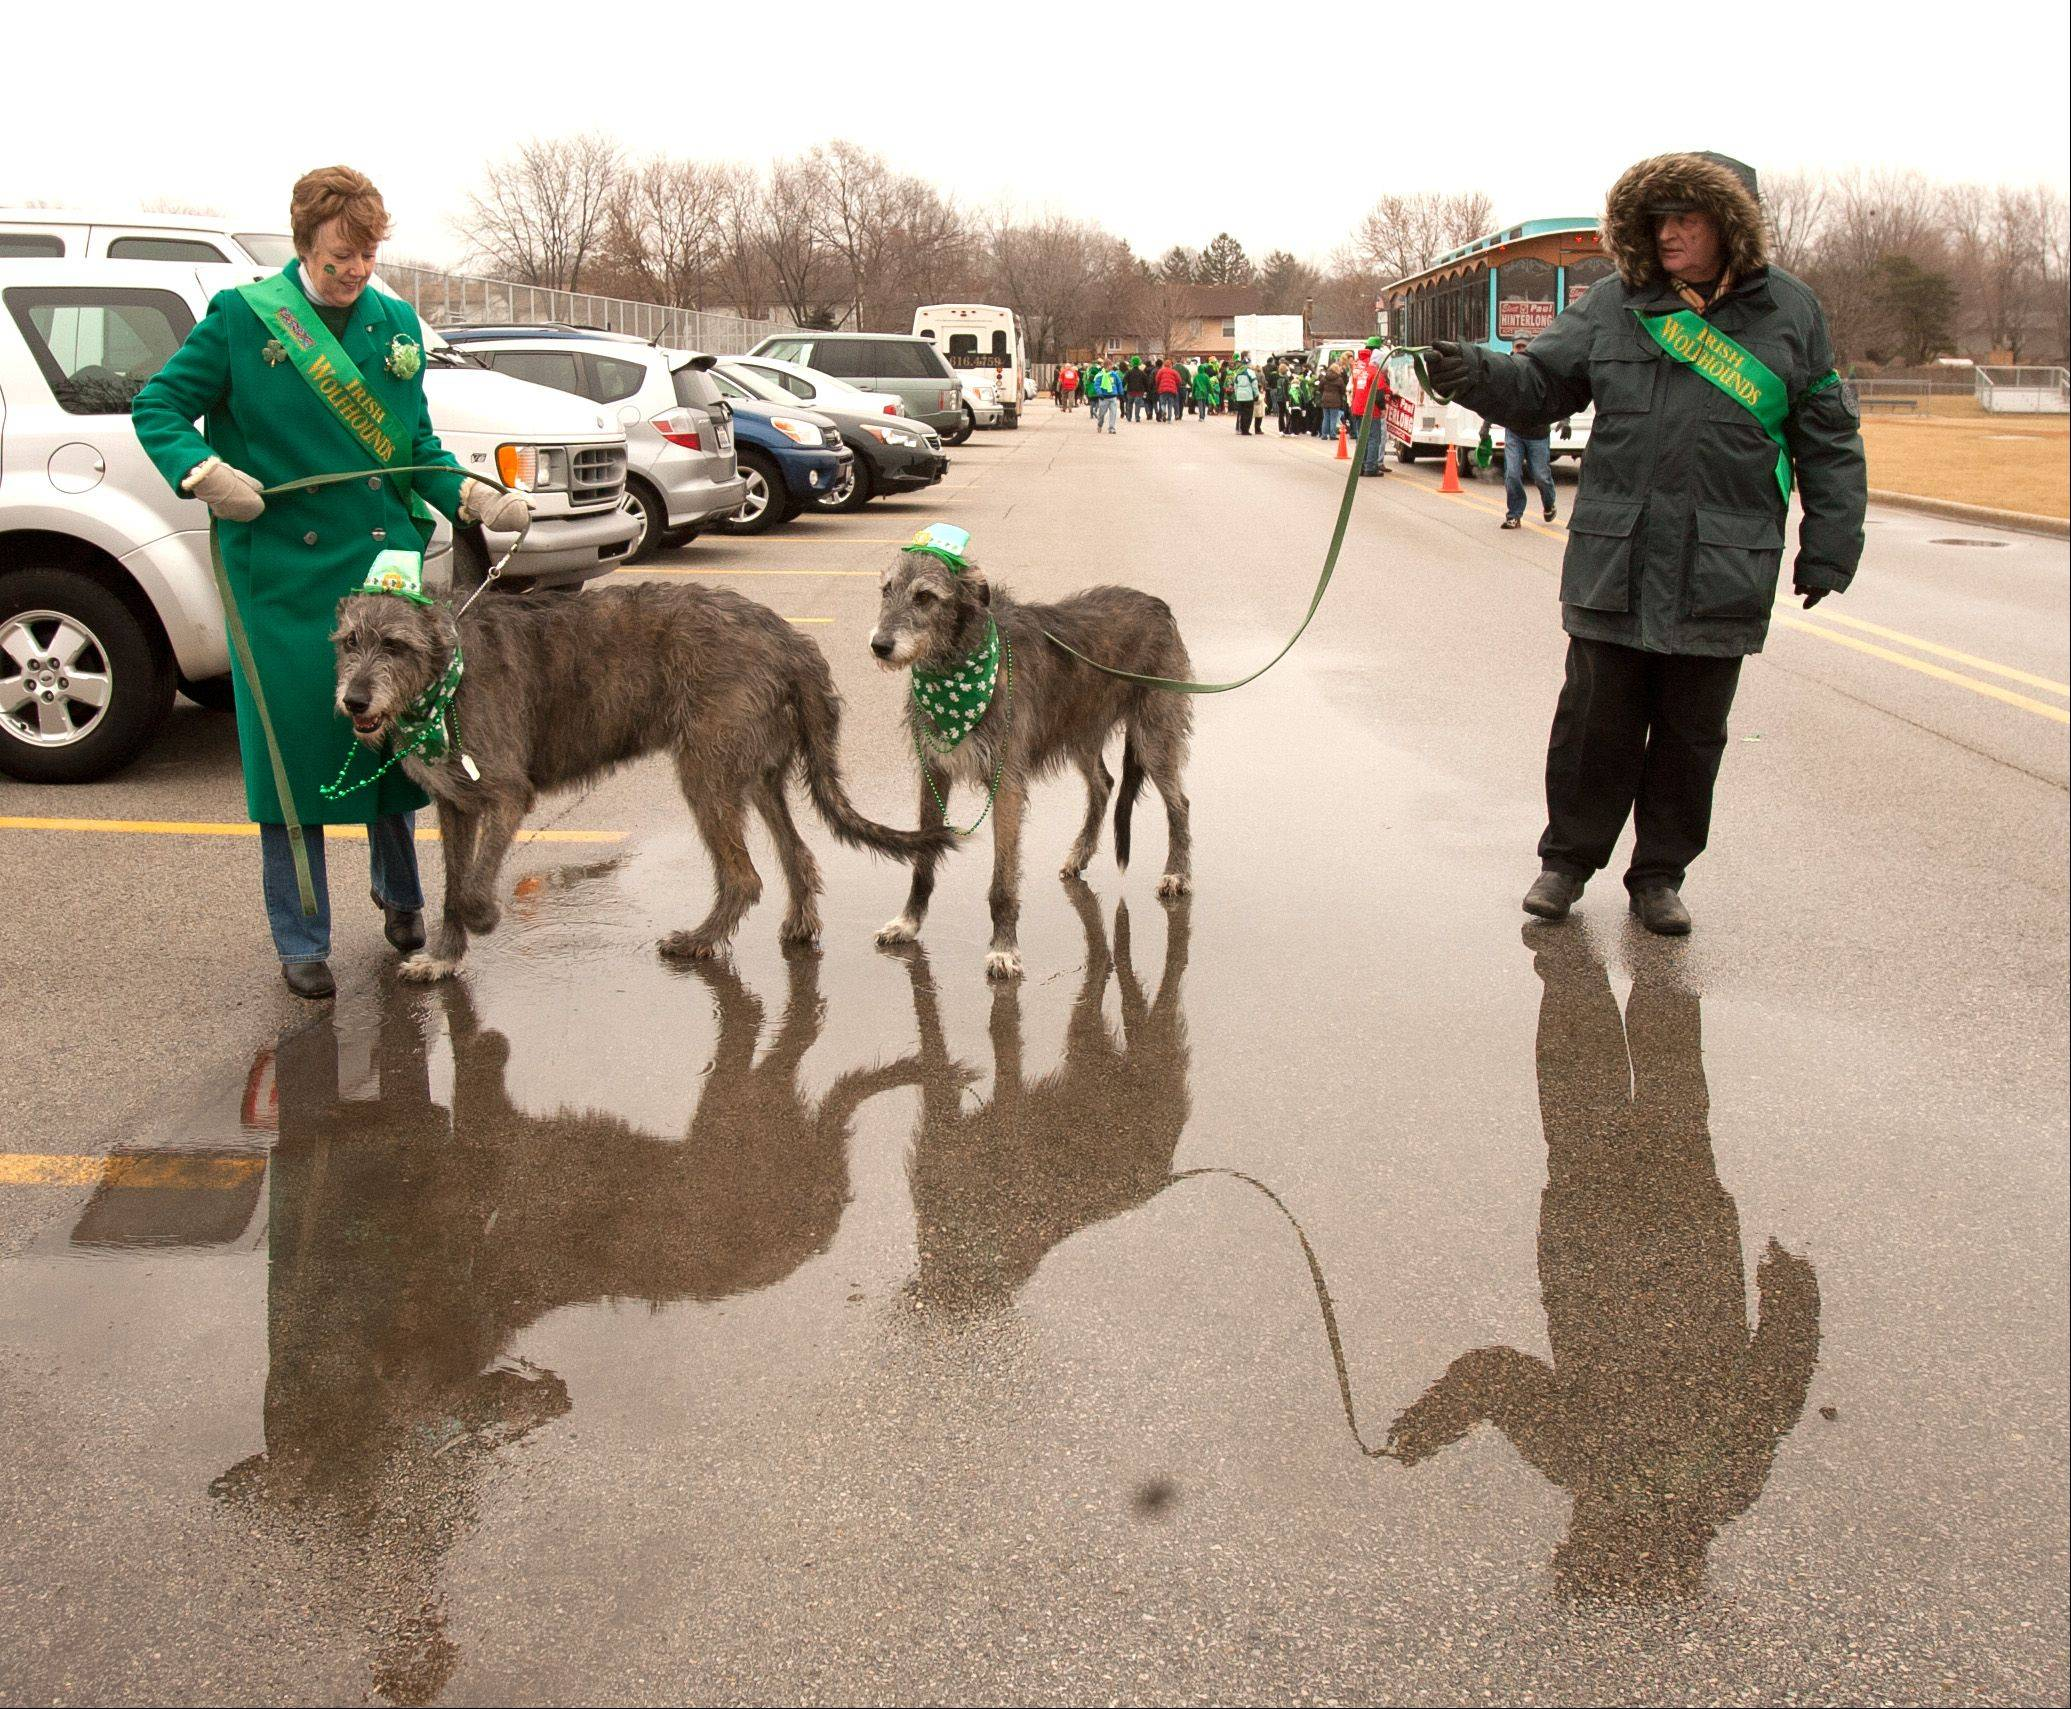 Joe and Madeline Mahoney of Shorewood and their two Irish Wolfhounds attend the Naperville's St. Patrick's Day parade Saturday.